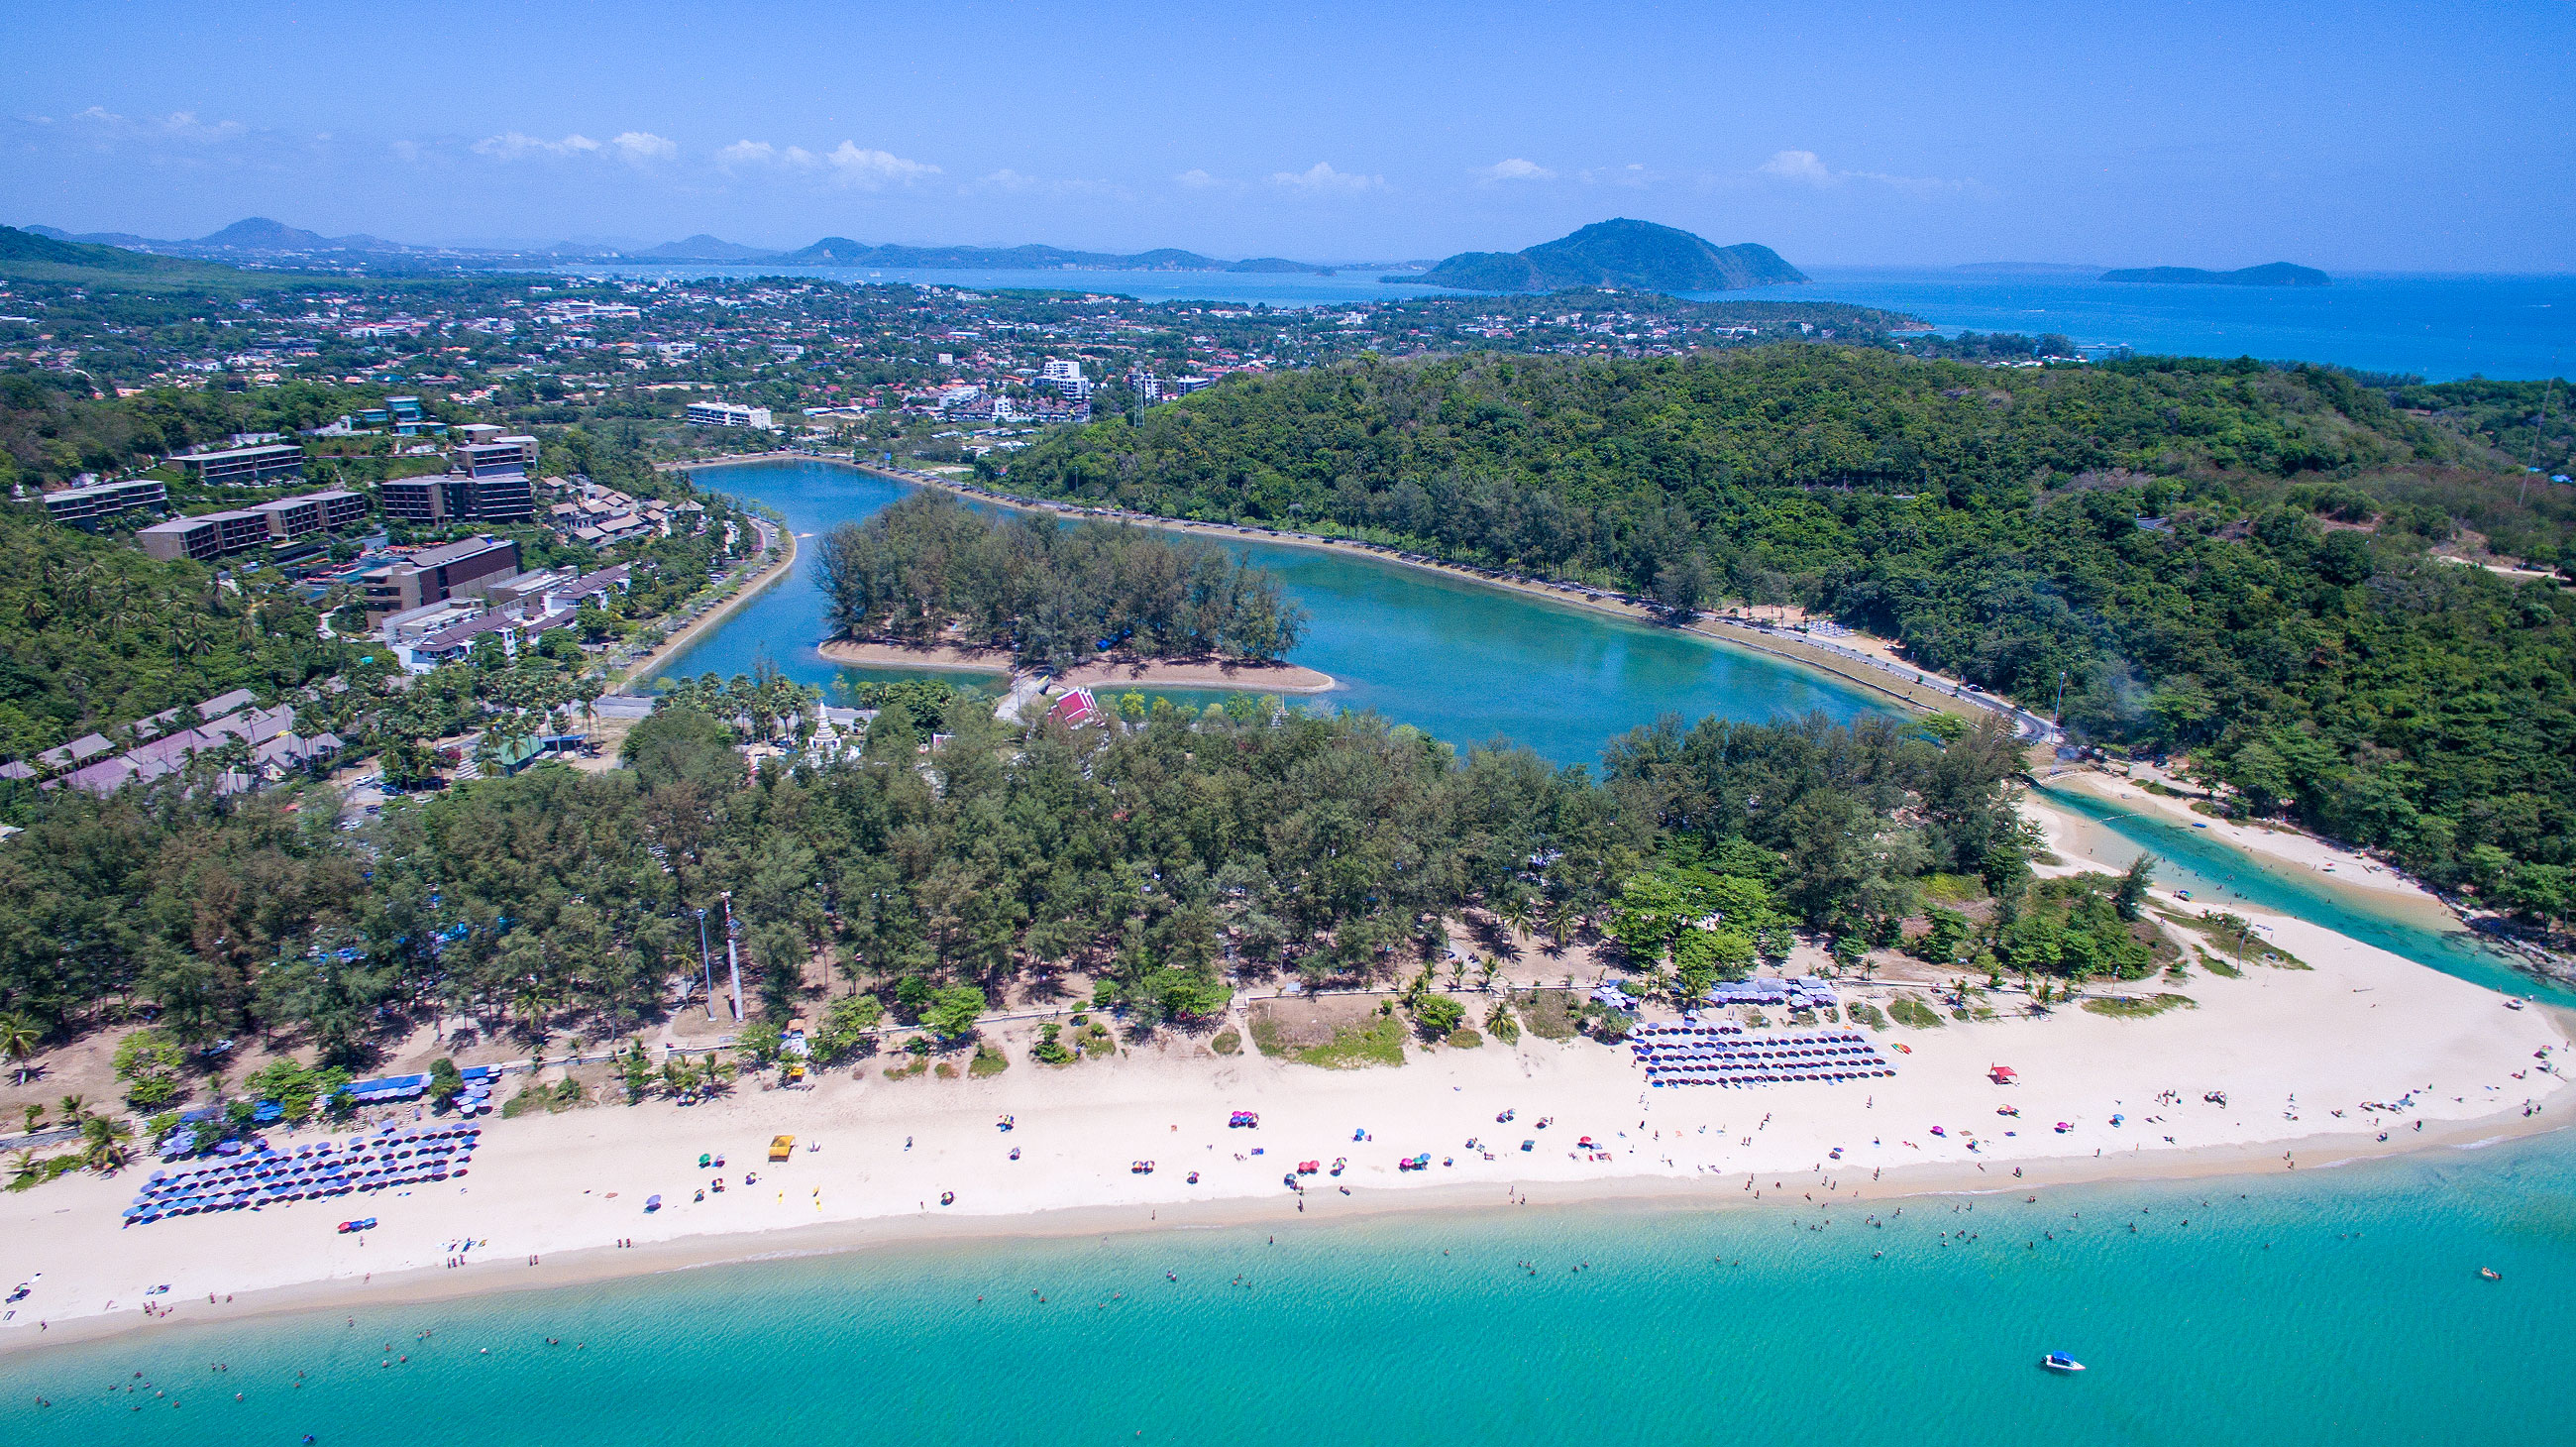 4DJI_0016-naiharn-beach-lake-view